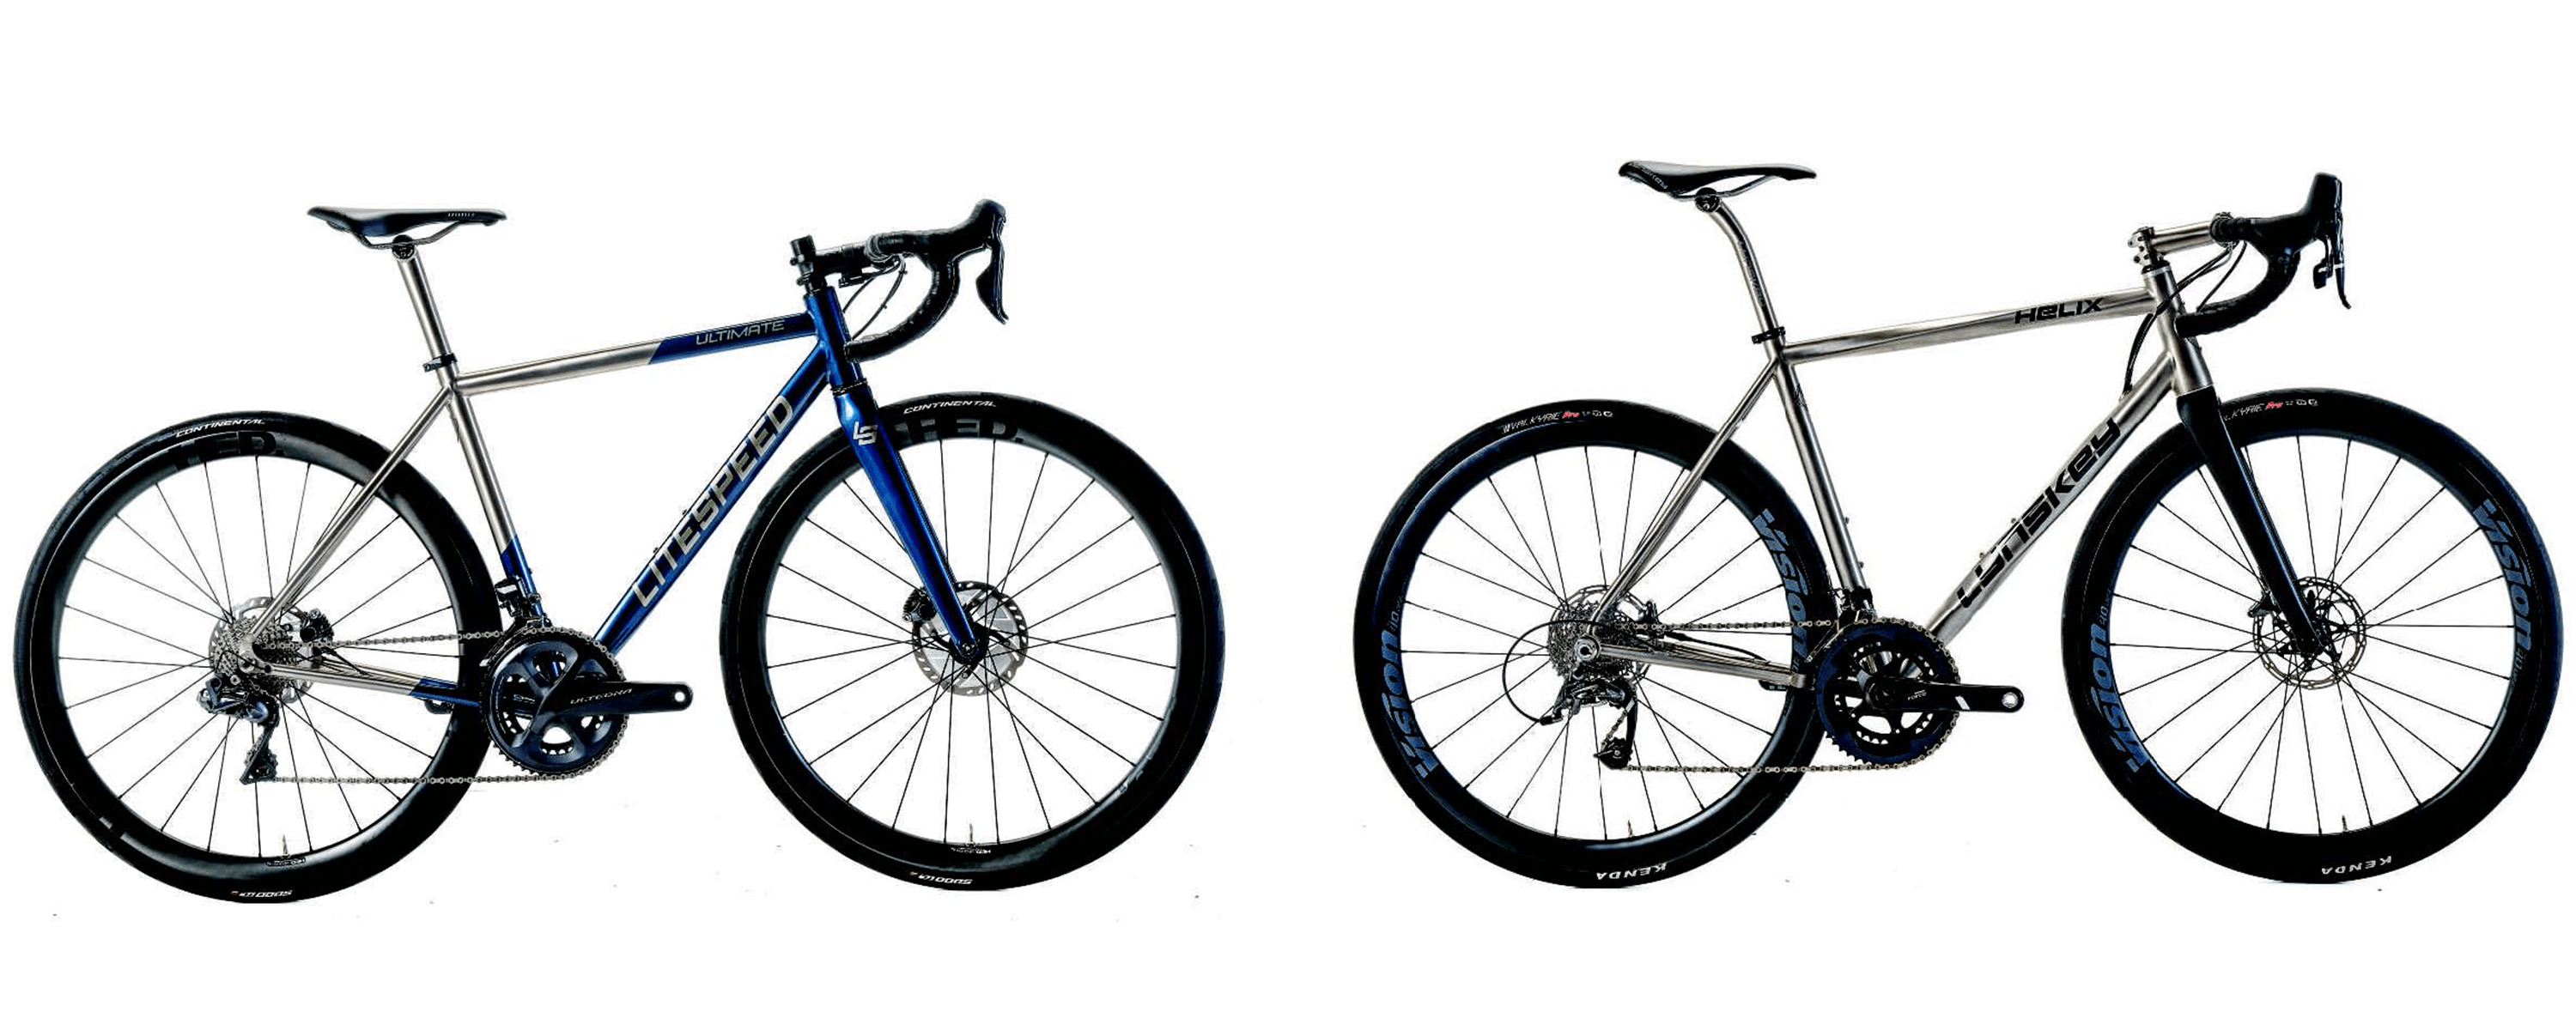 Litespeed vs. Lynskey